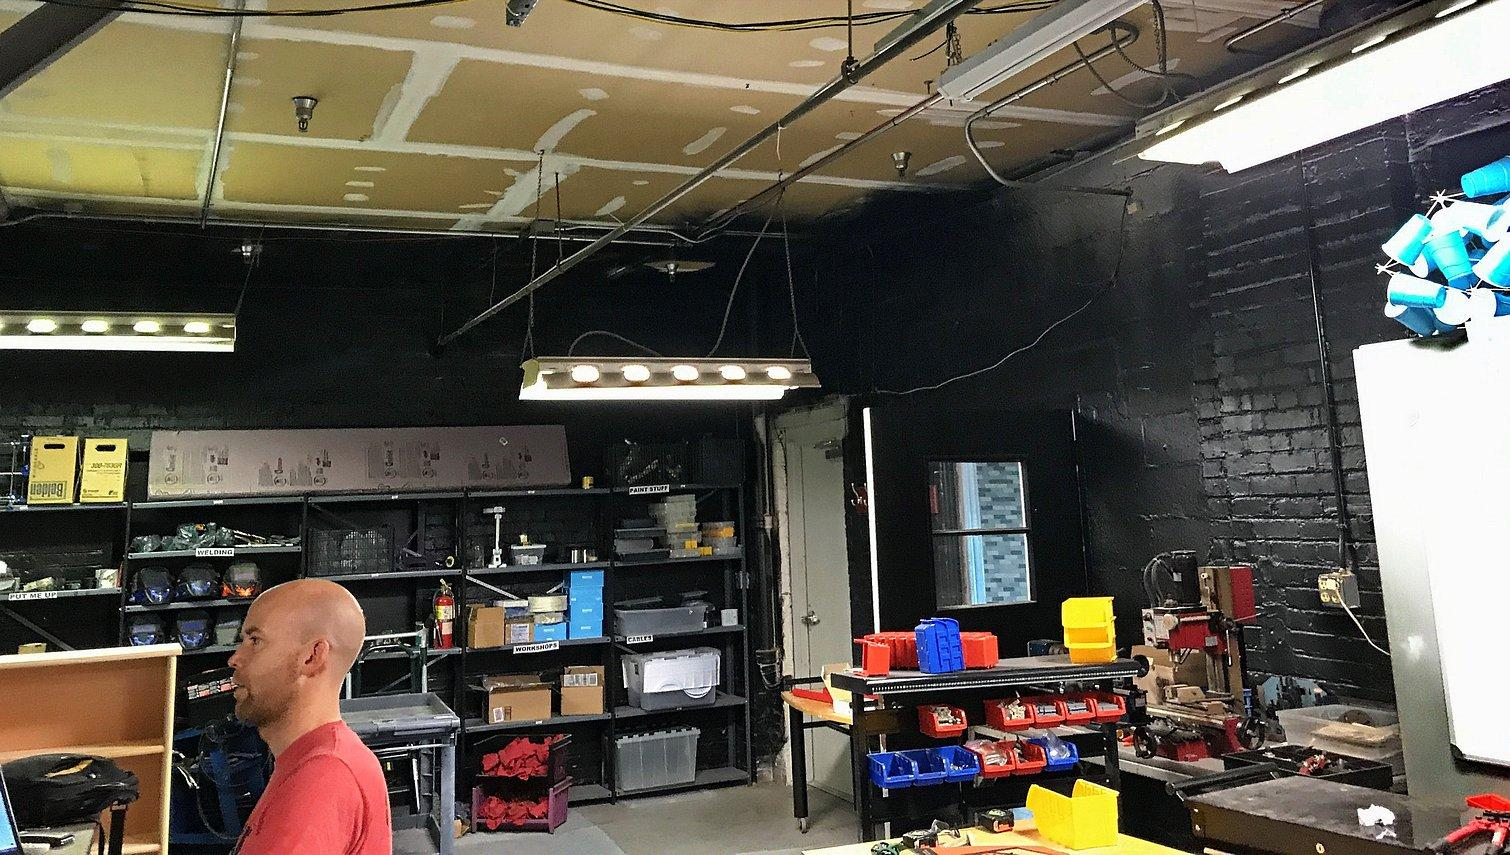 Chatt*lab's Makerspace Encourages Inventing, Creating